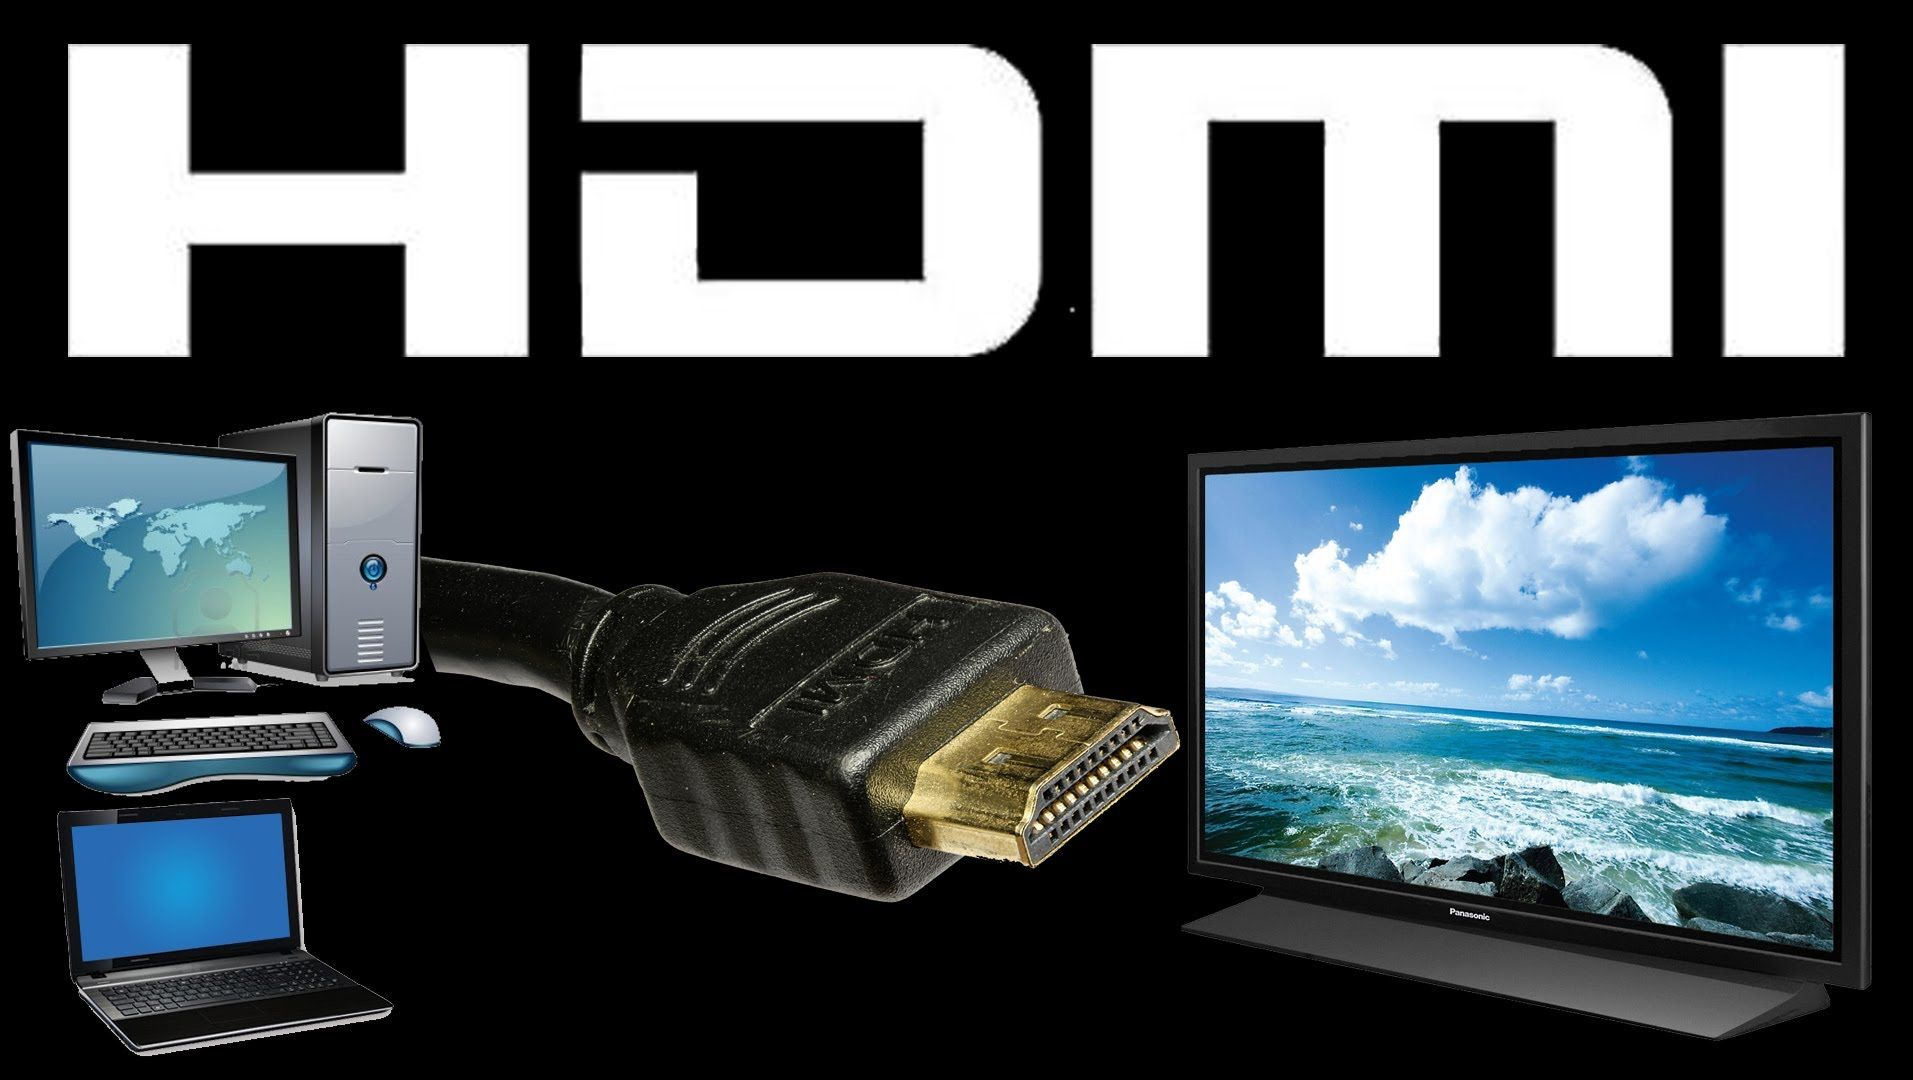 10015ff47c19176cd02d040ff72ed19f - How To Get Hdmi Sound On Tv From Pc